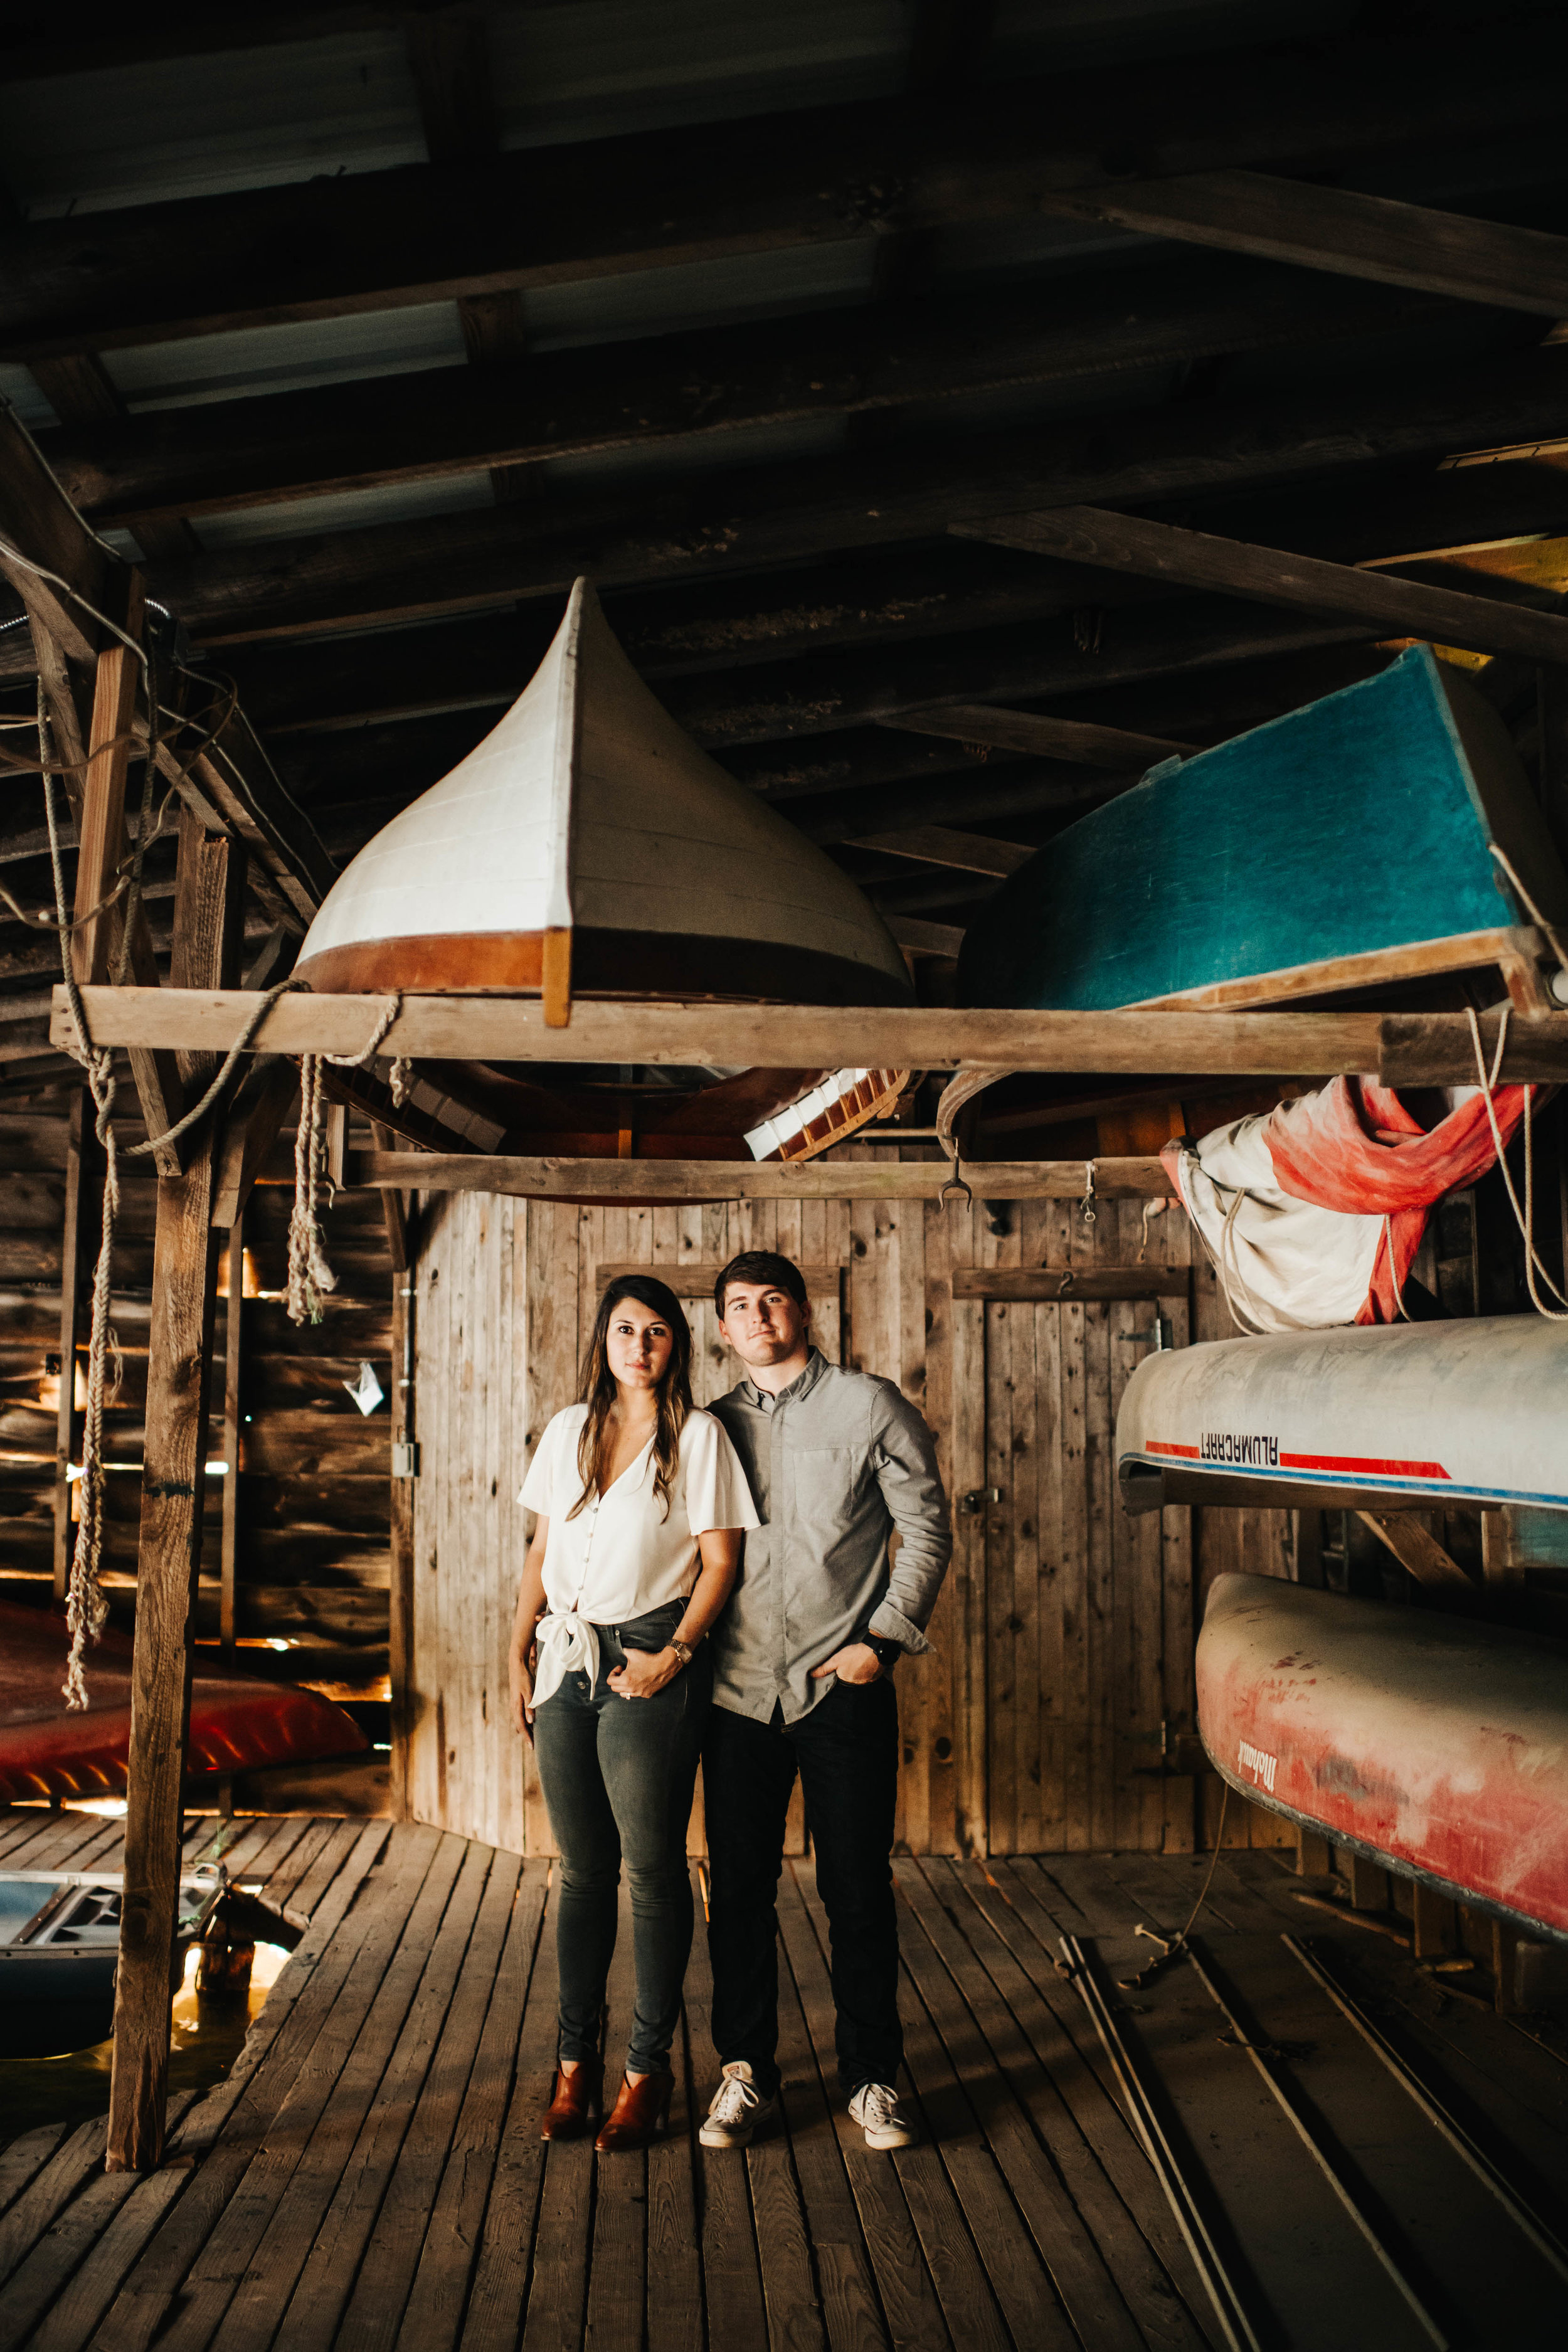 san francisco oakland bay area california sf atlanta georgia camp wes anderson moonrise kingdom inspired canoe engagement nontraditional wedding photographer -161.jpg